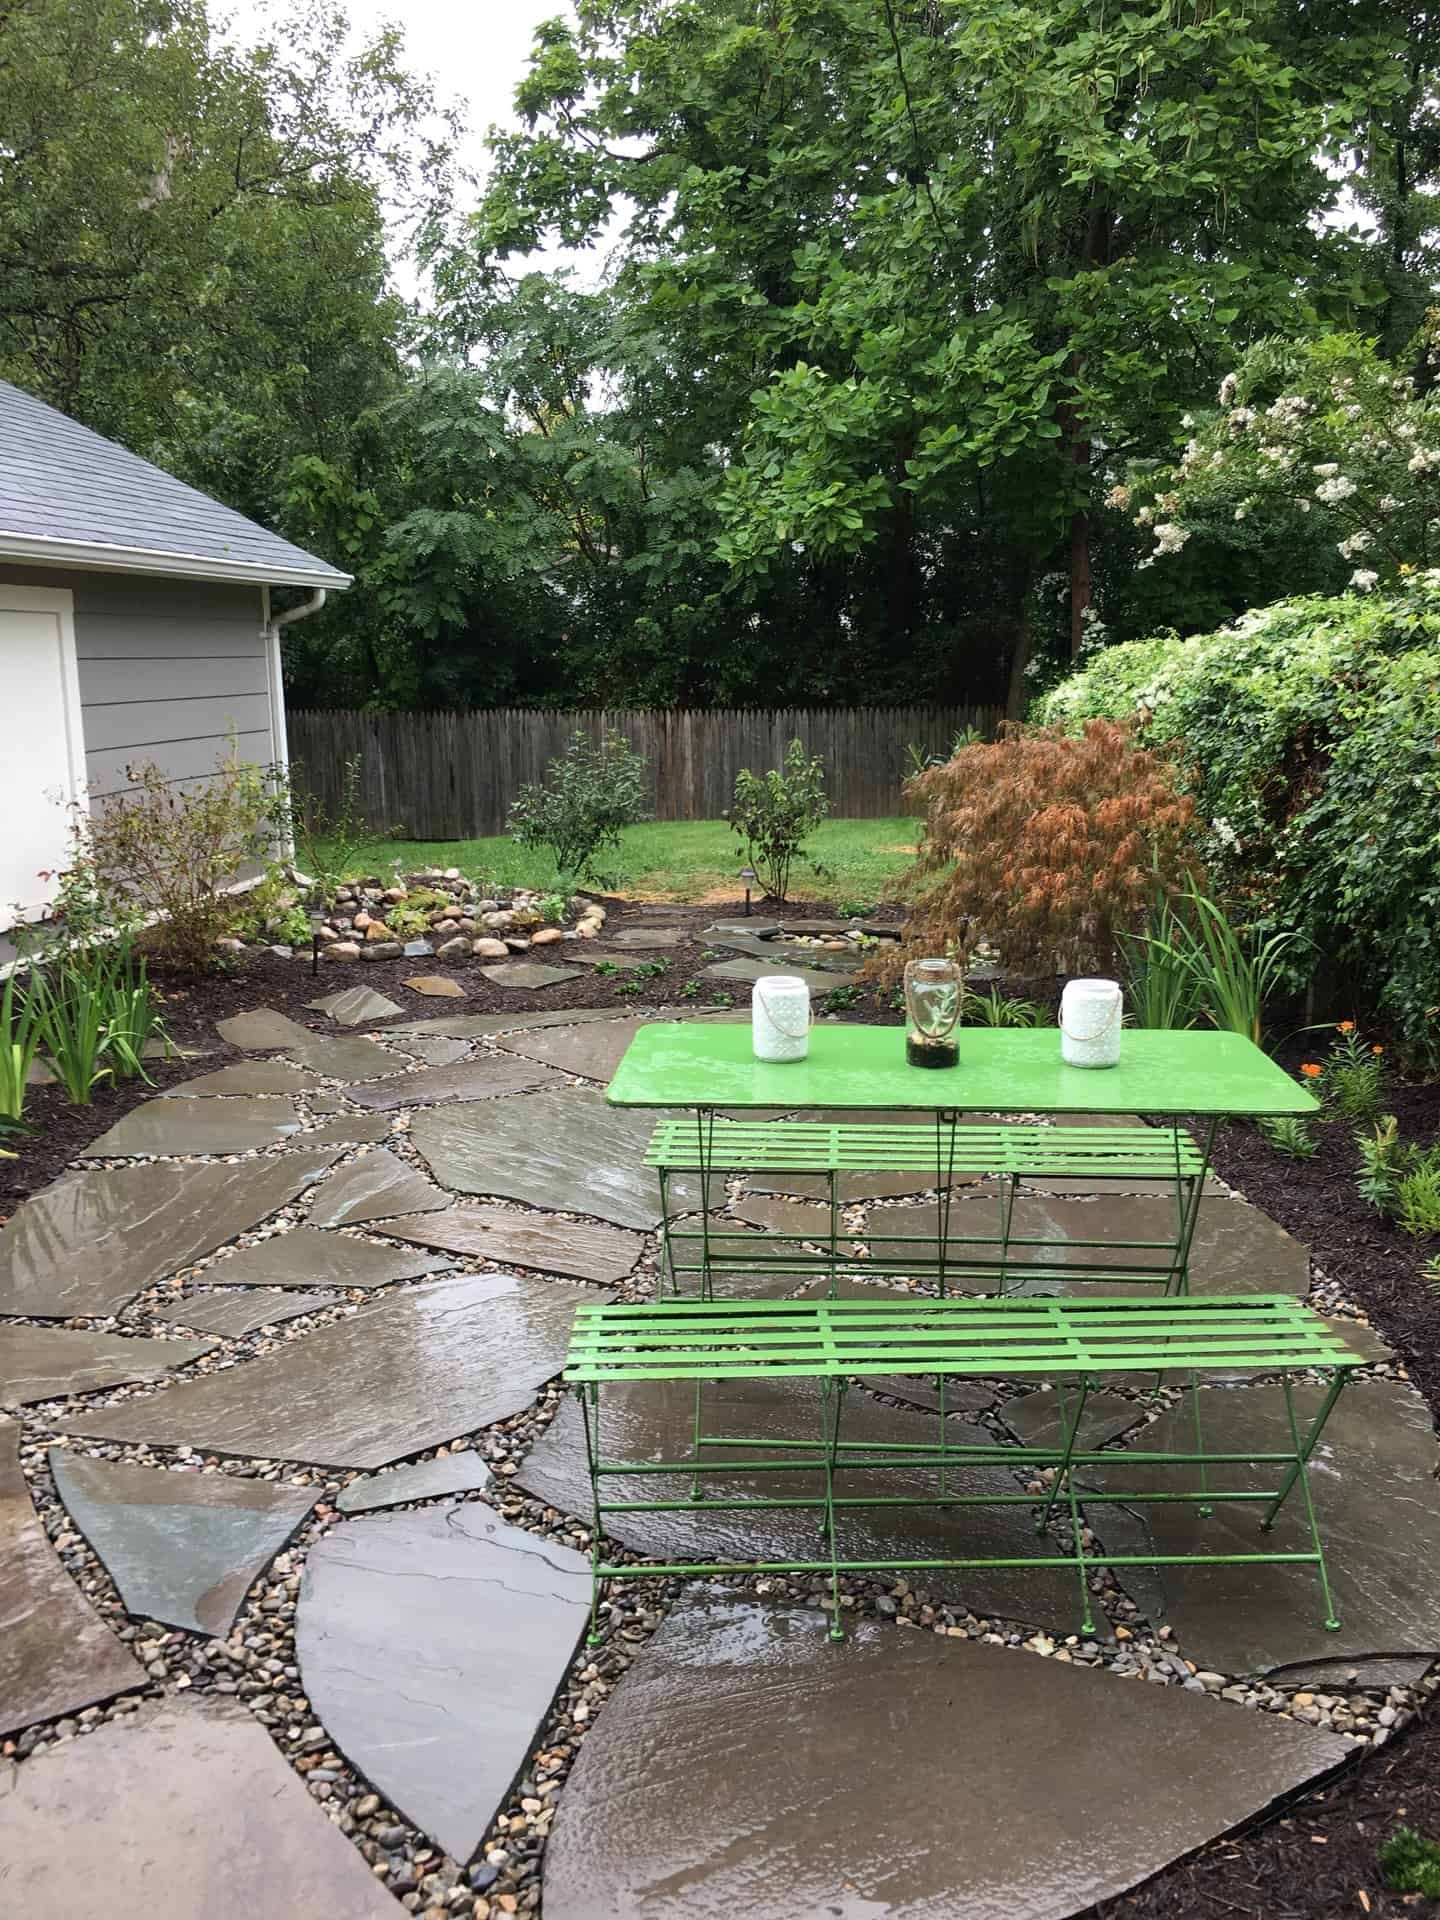 How Much Does Landscaping Cost Landscape Design Installation with regard to How Much Does Backyard Landscaping Cost